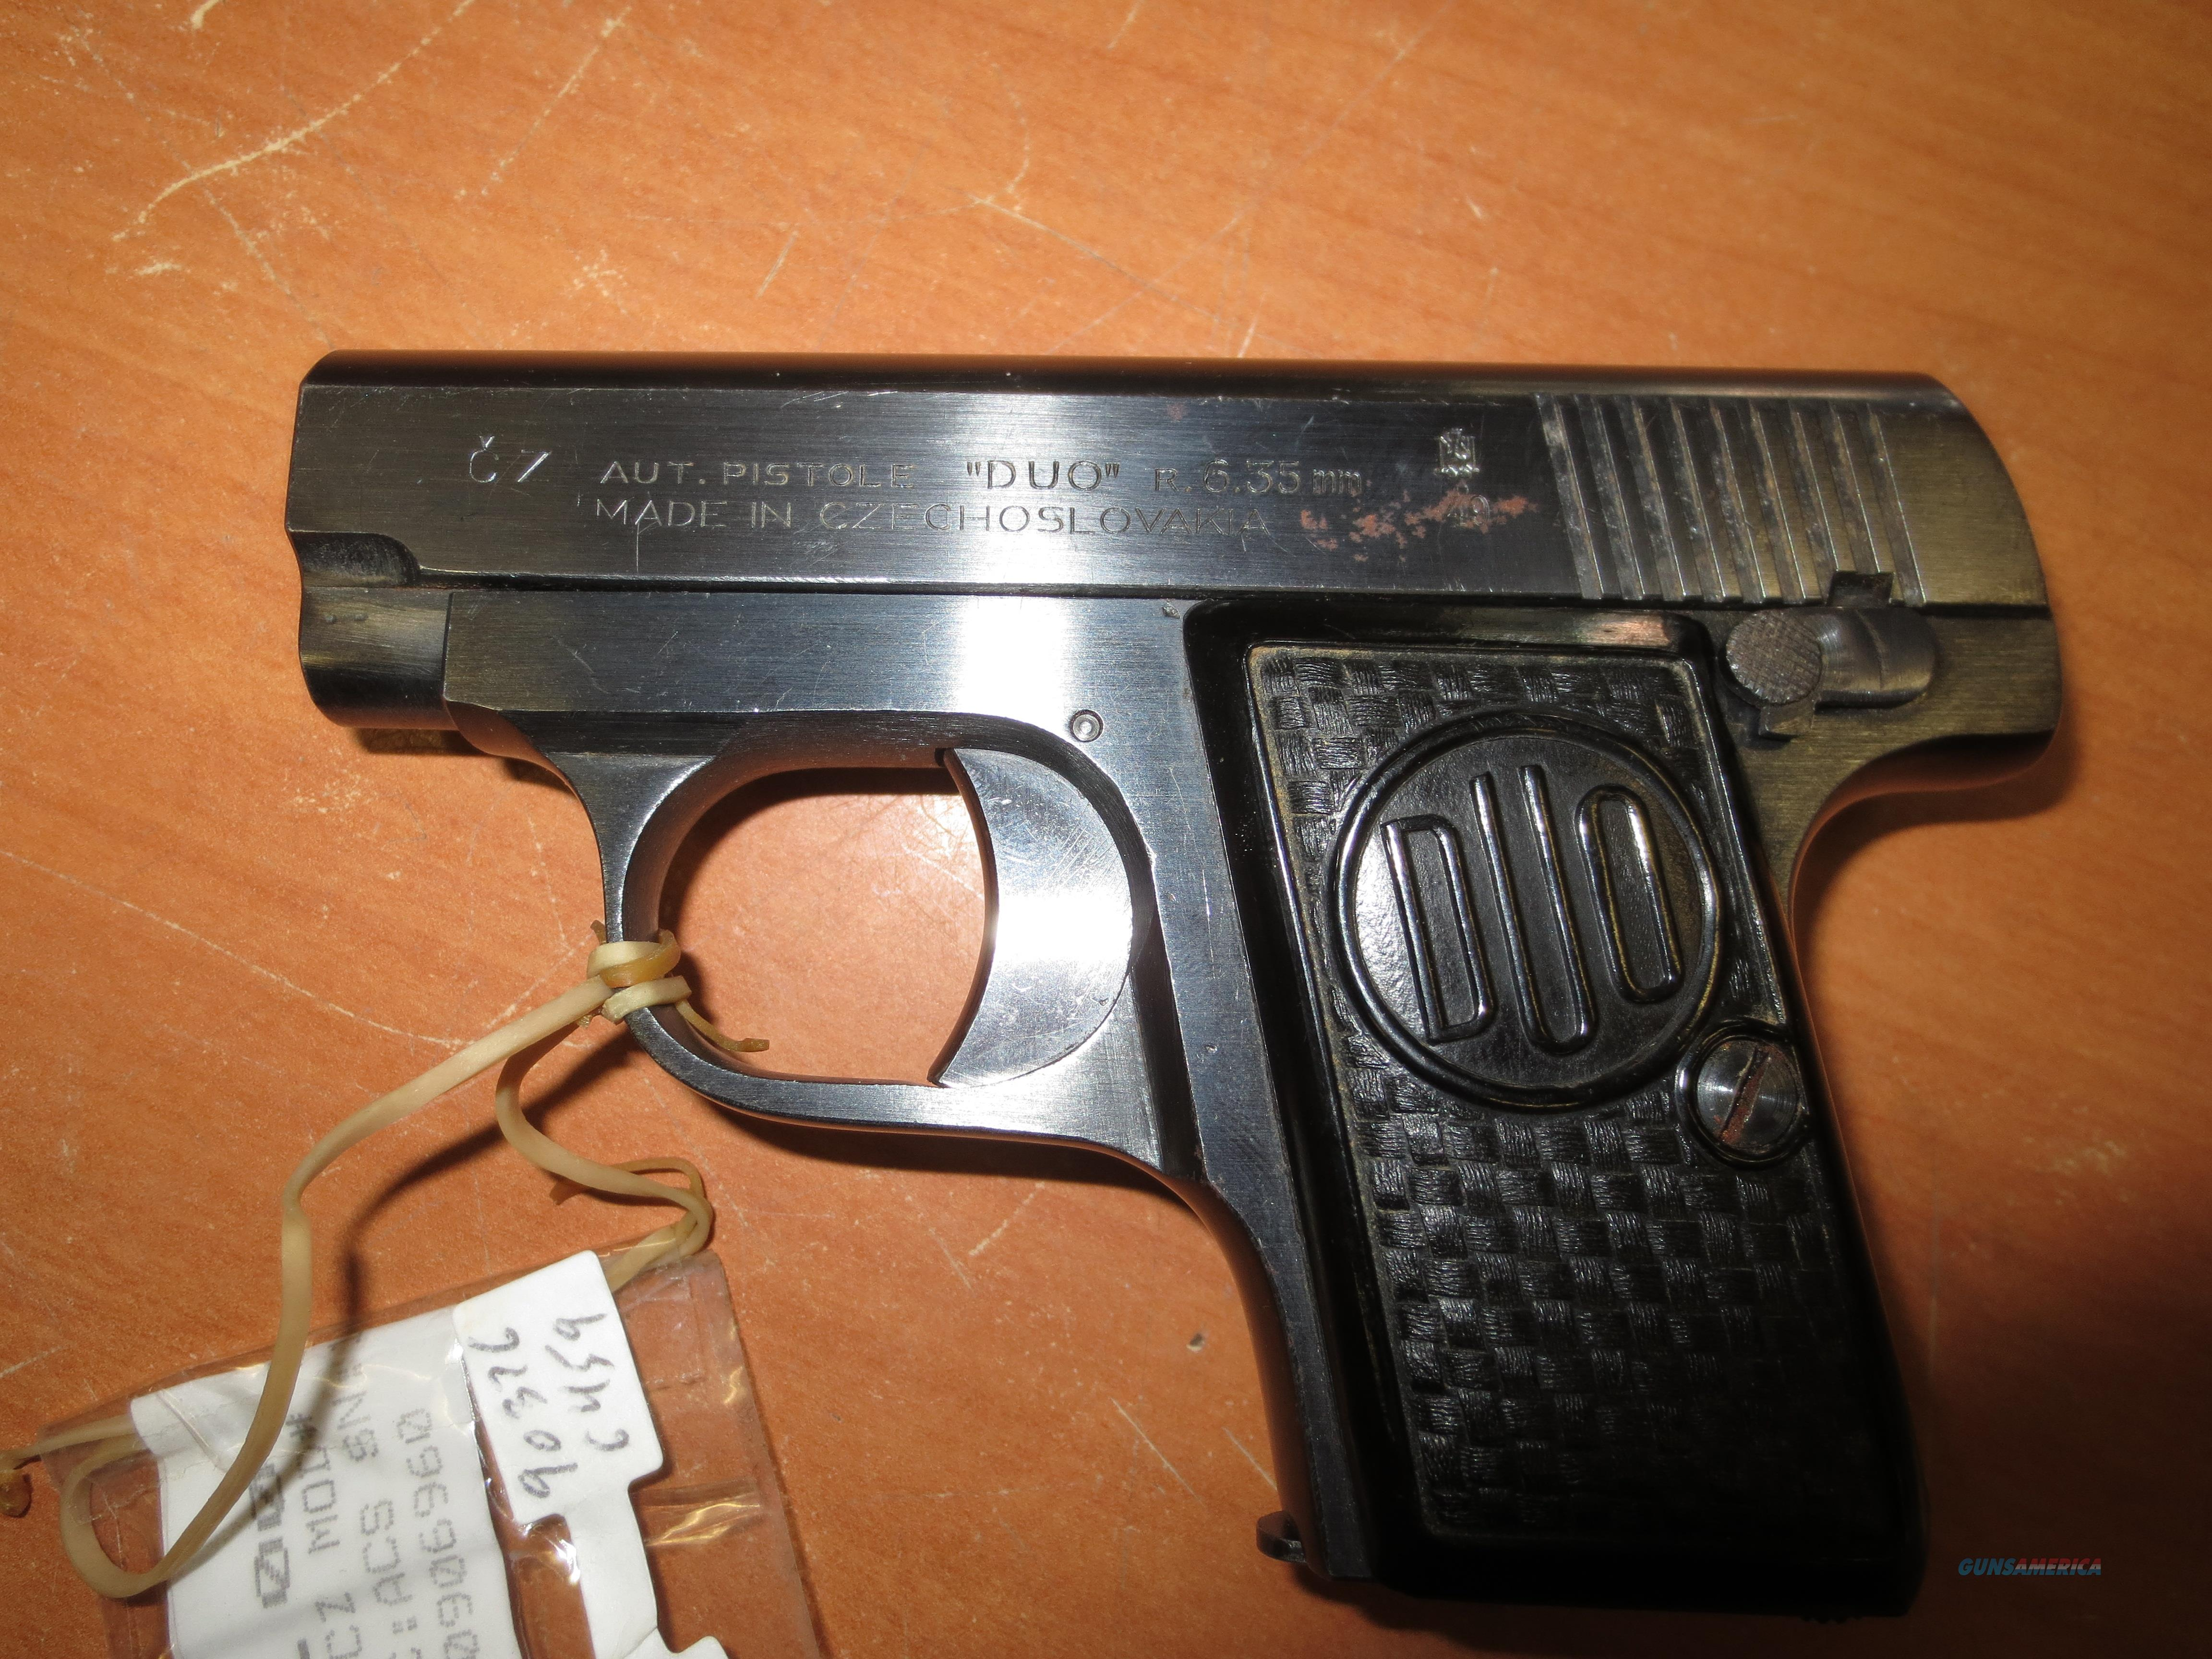 "CZ ""DUO"" pistol 6.35mm (25 acp) made 1949   Guns > Pistols > CZ Pistols"